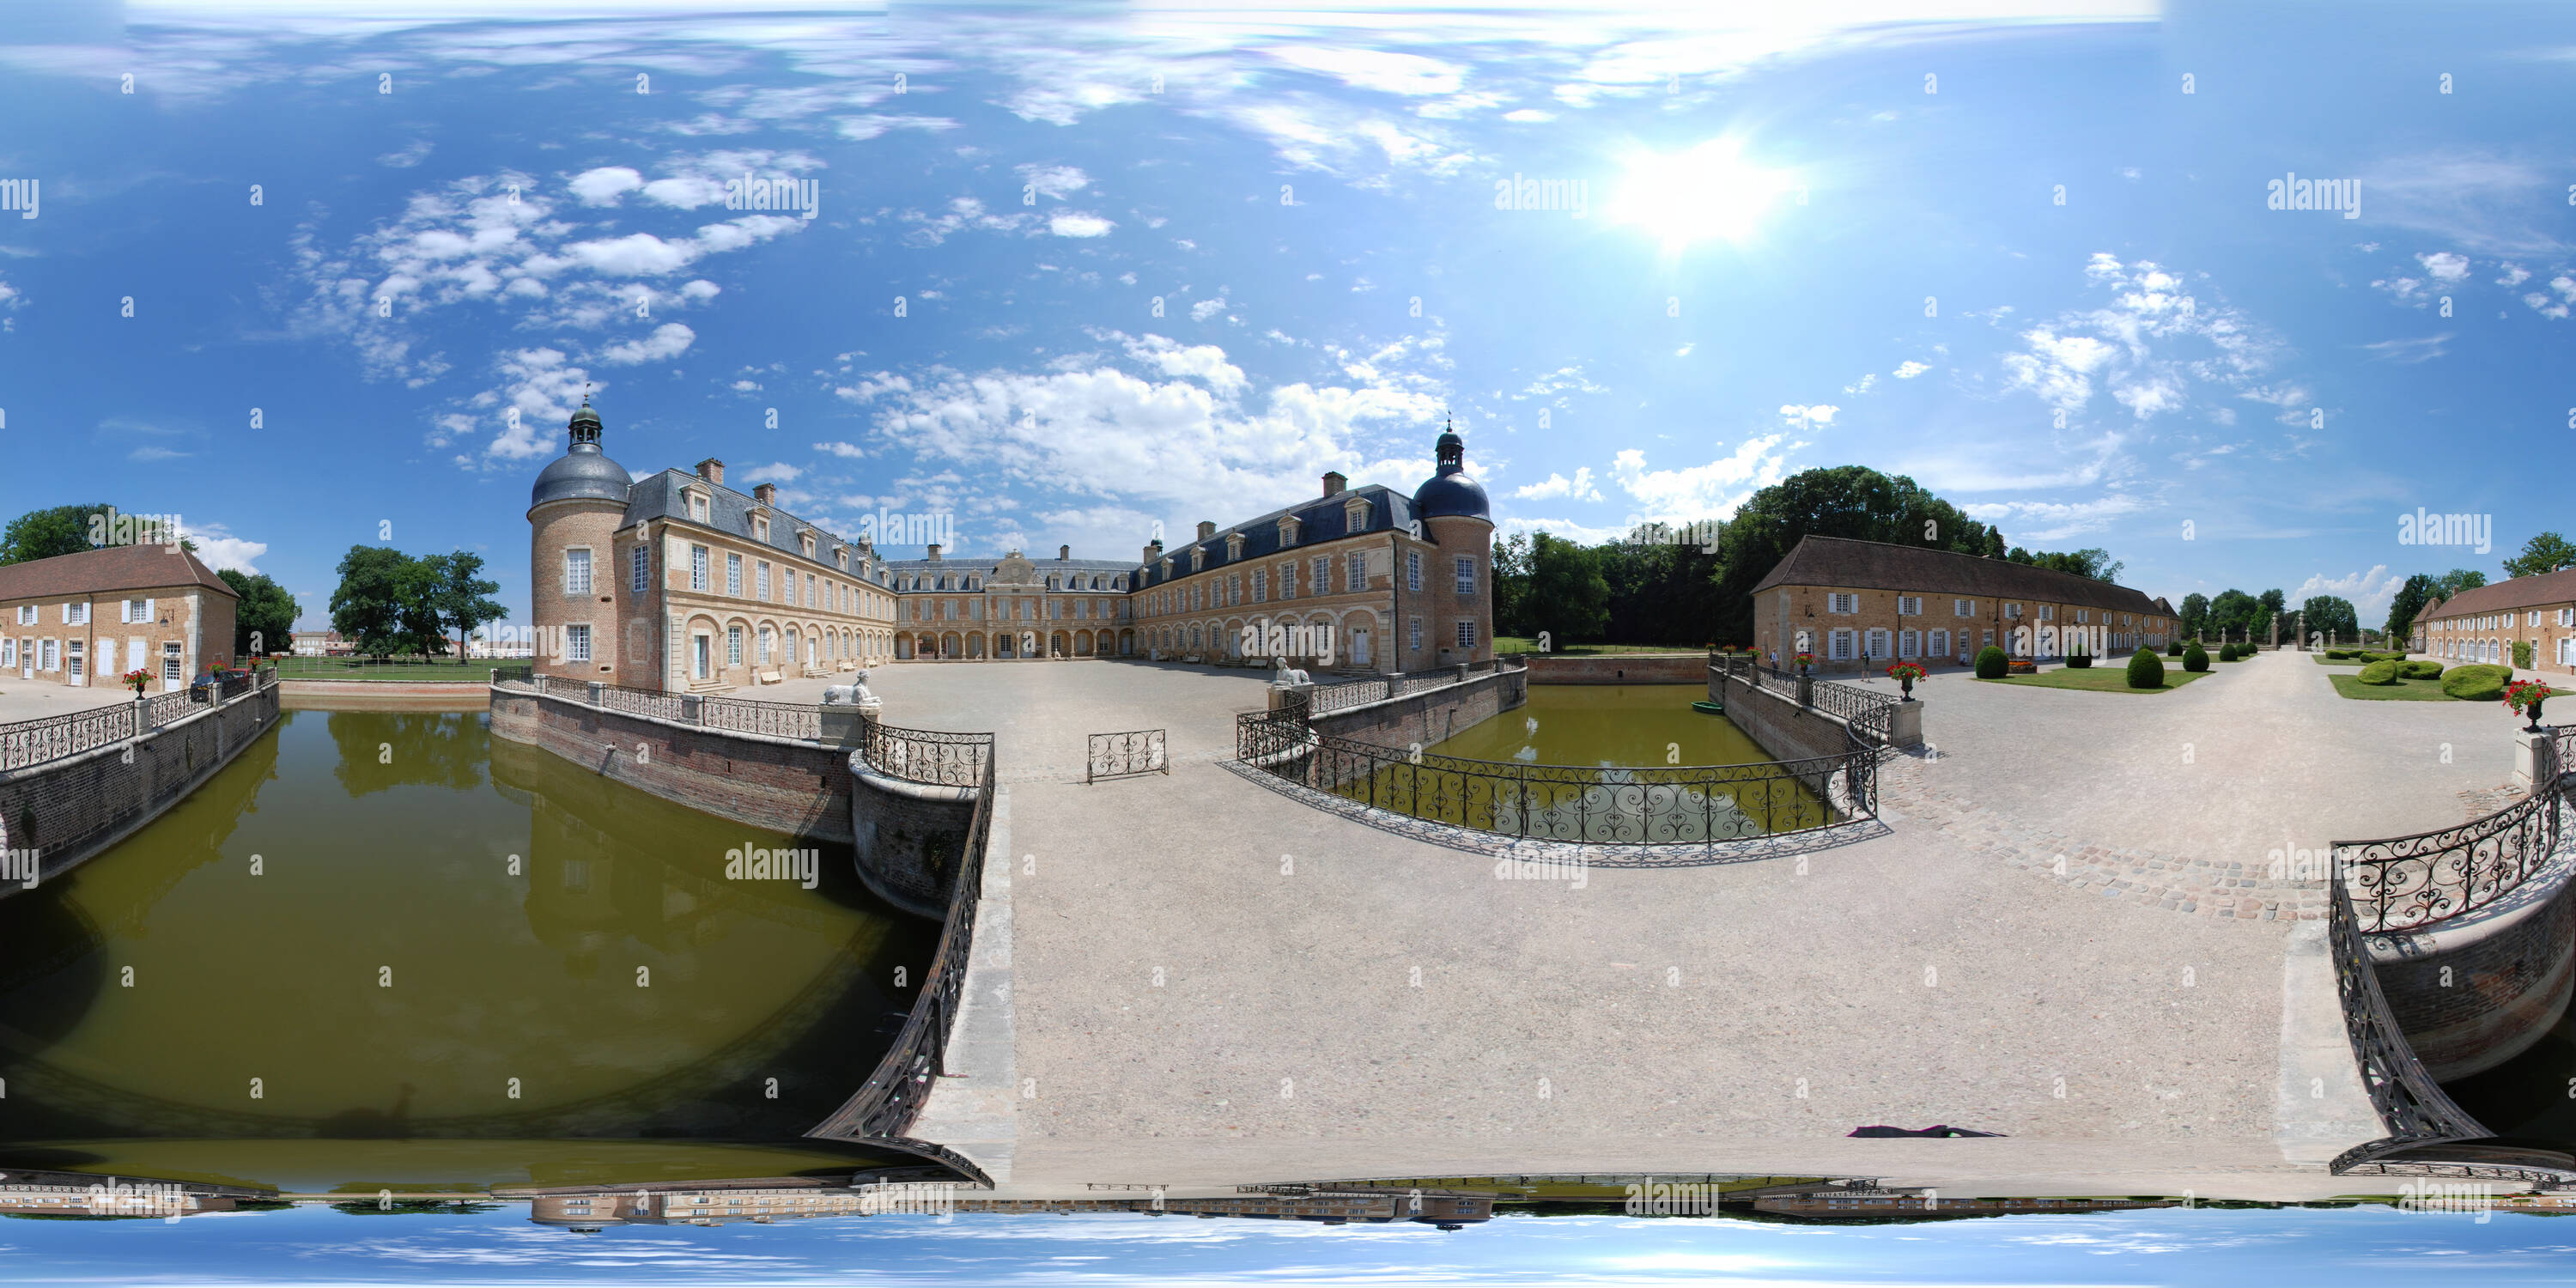 Pierre Bourgogne 360 View Of Chateau De Pierre De Bresse Bourgogne France